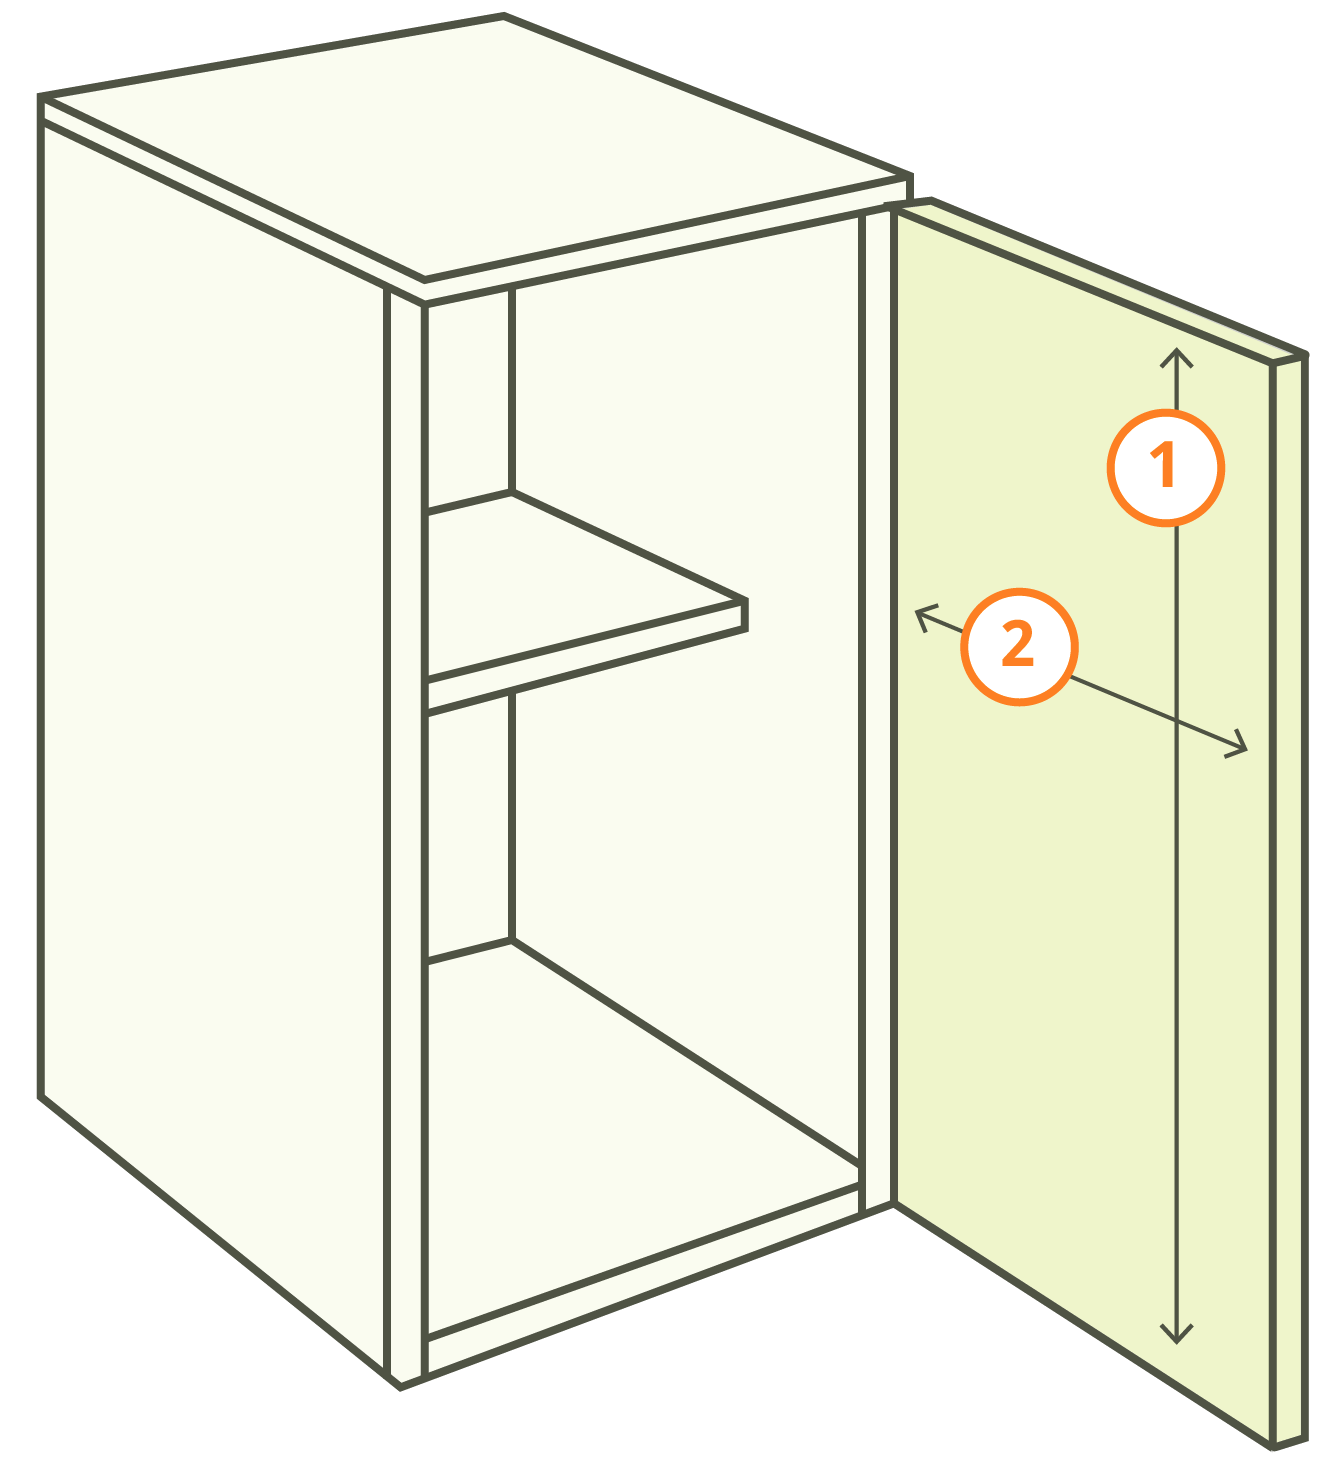 kitchen-door-measurement